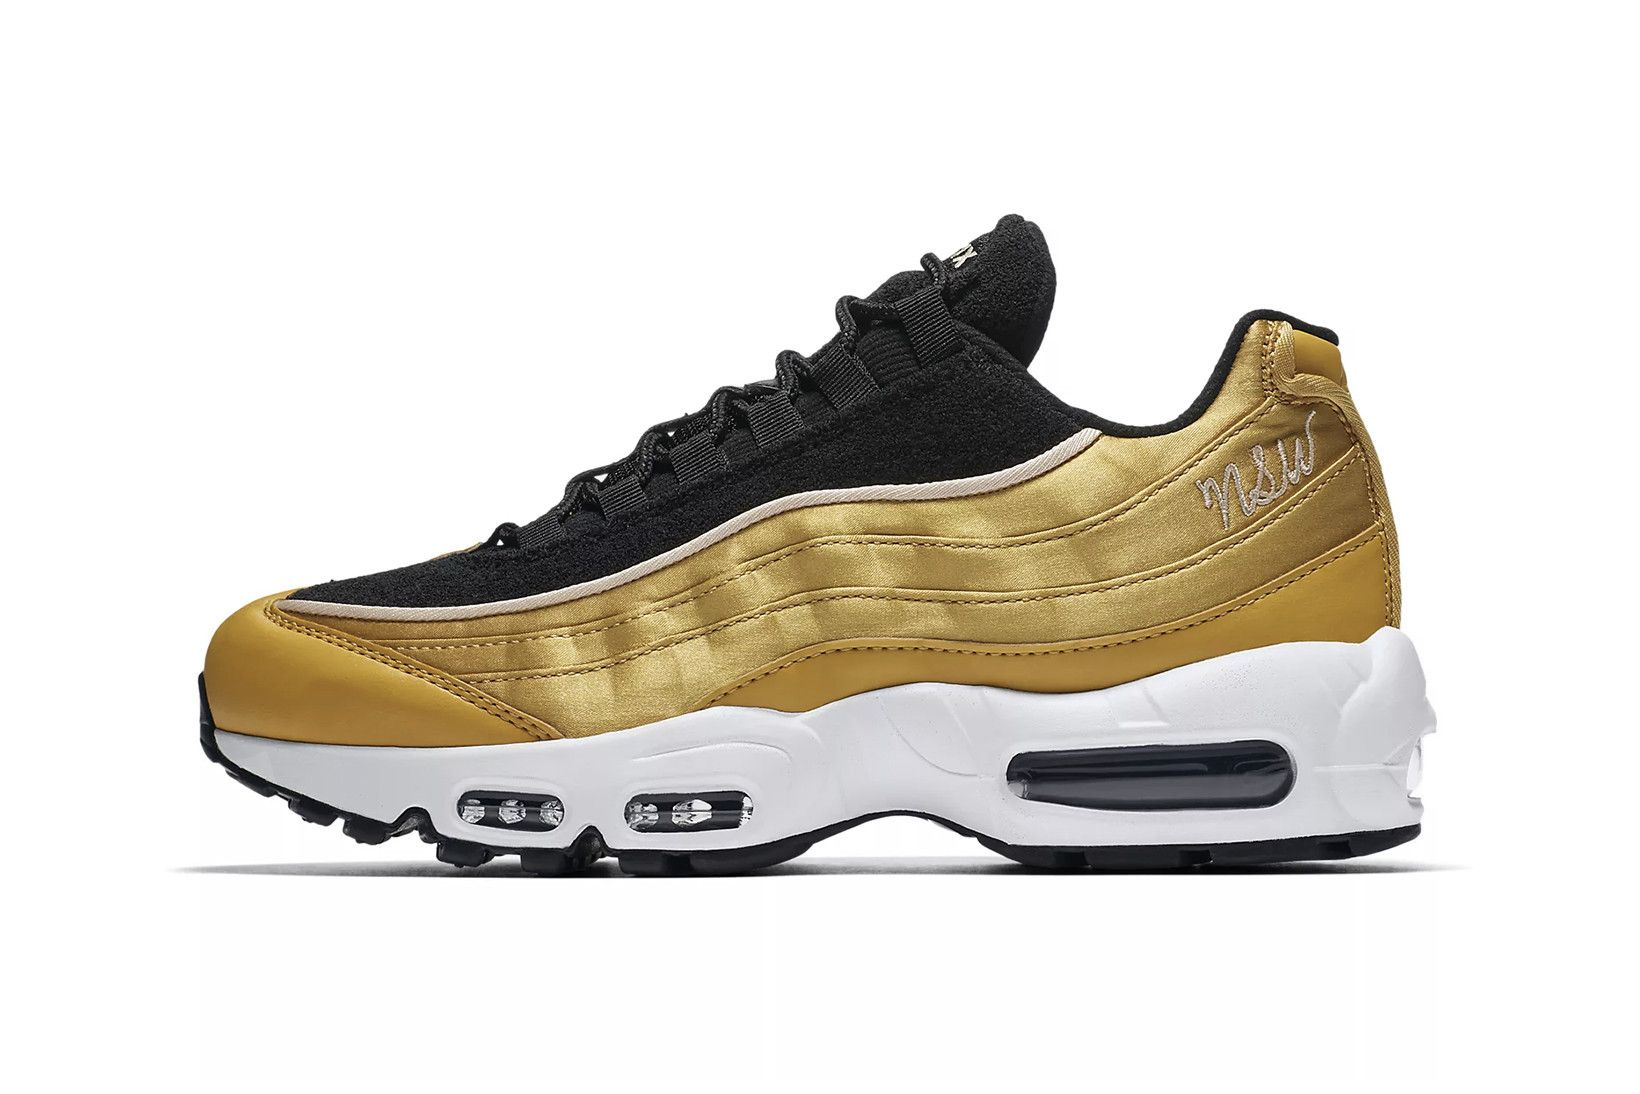 218bdd588d0bf Nike s Air Max 95 LX Just Dropped in Black and Metallic Gold in 2019 ...